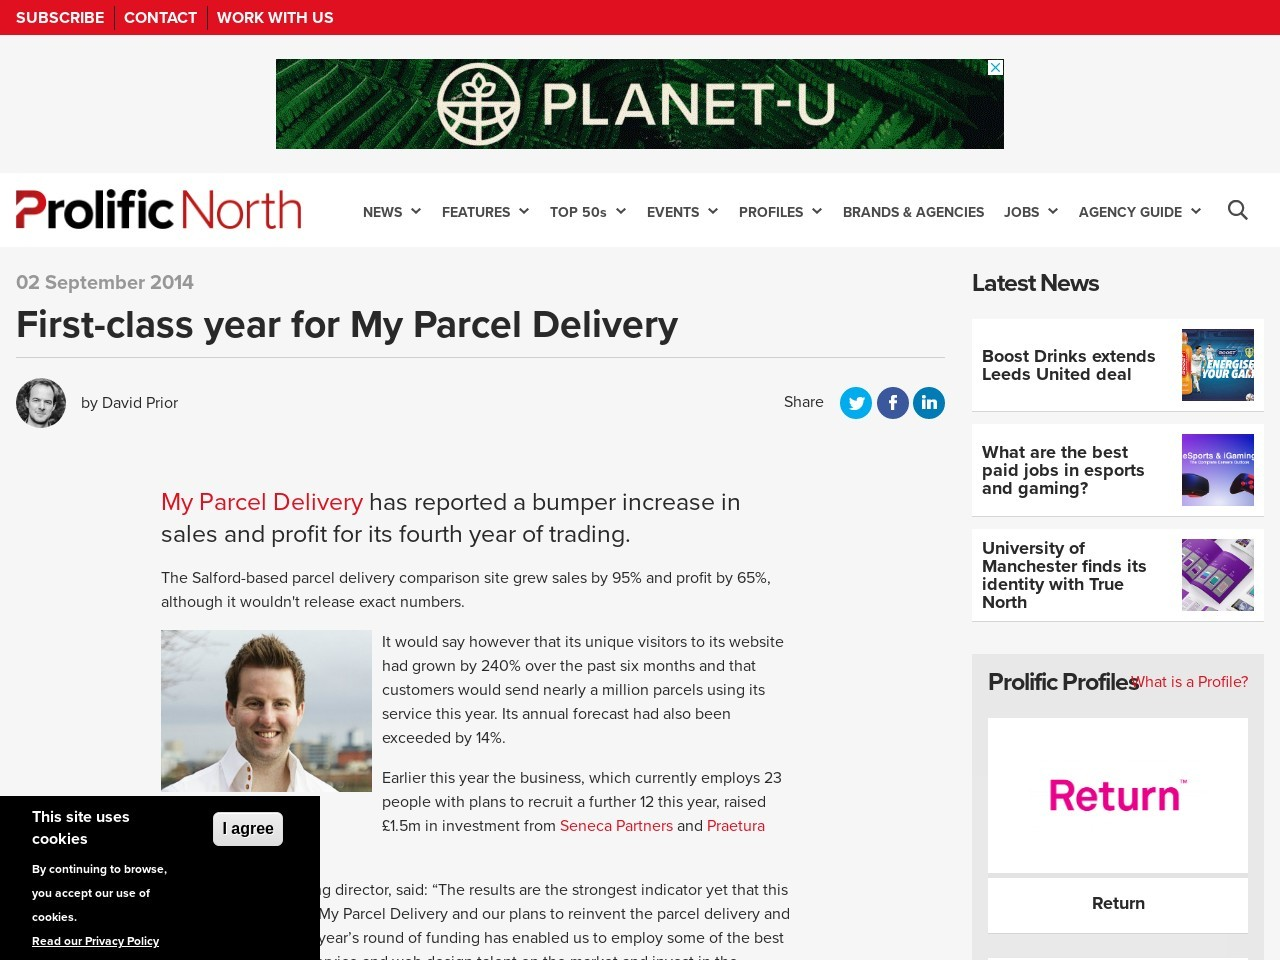 First-class year for My Parcel Delivery